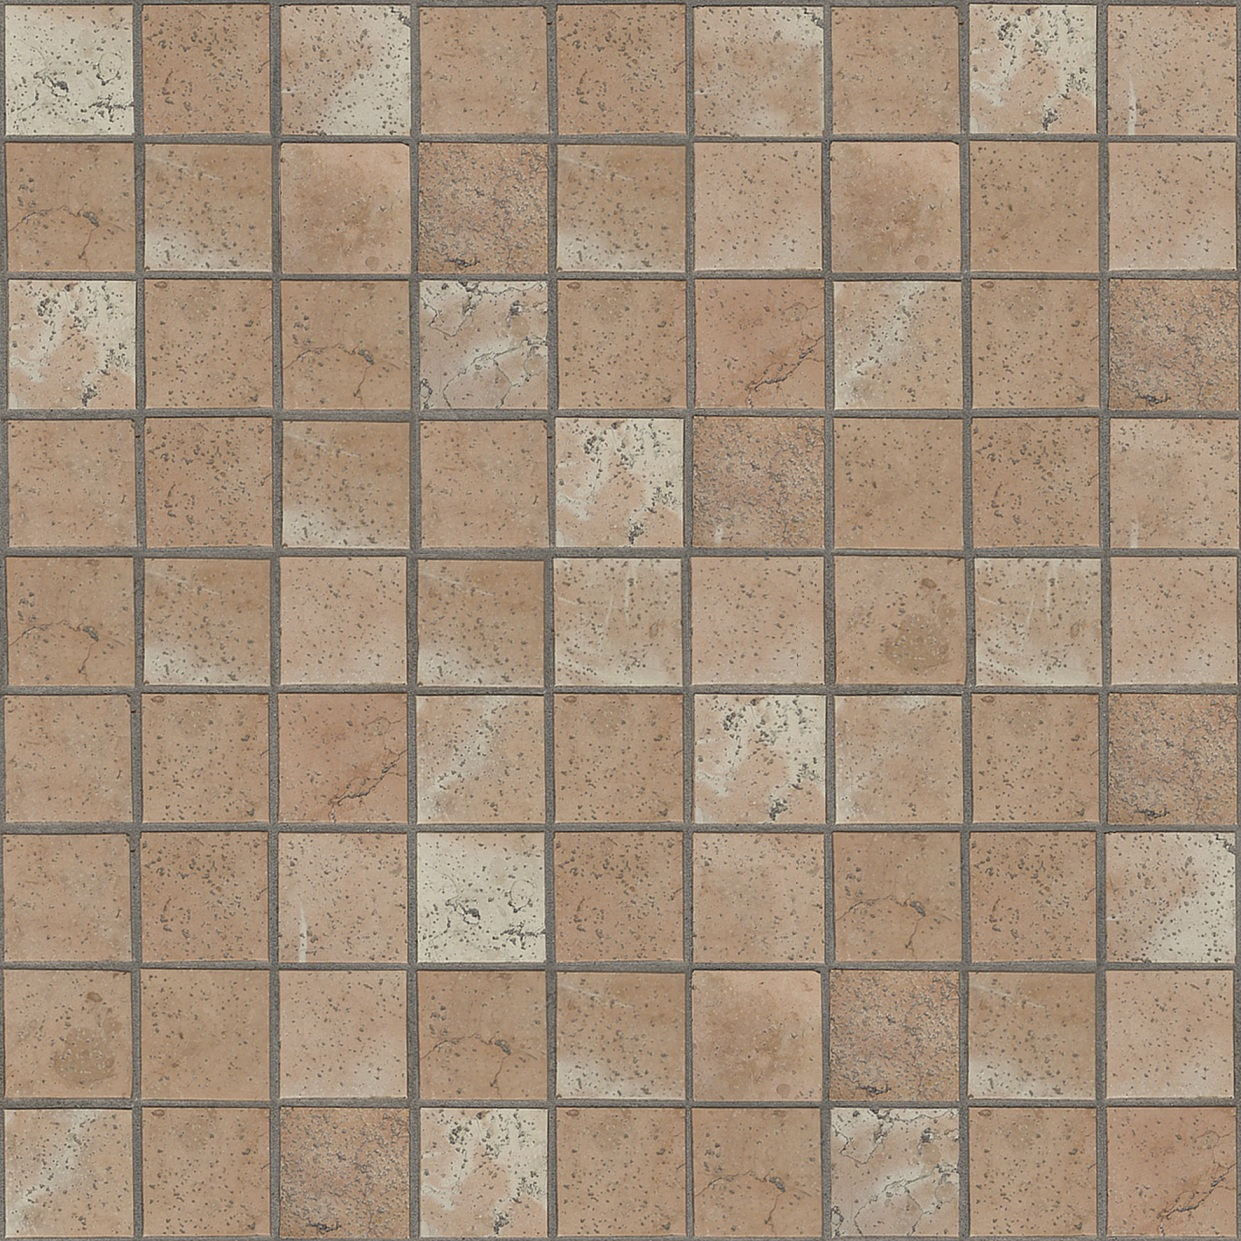 Great Seamless Textures Floor Tile 1241 X 1241 633 KB Jpeg